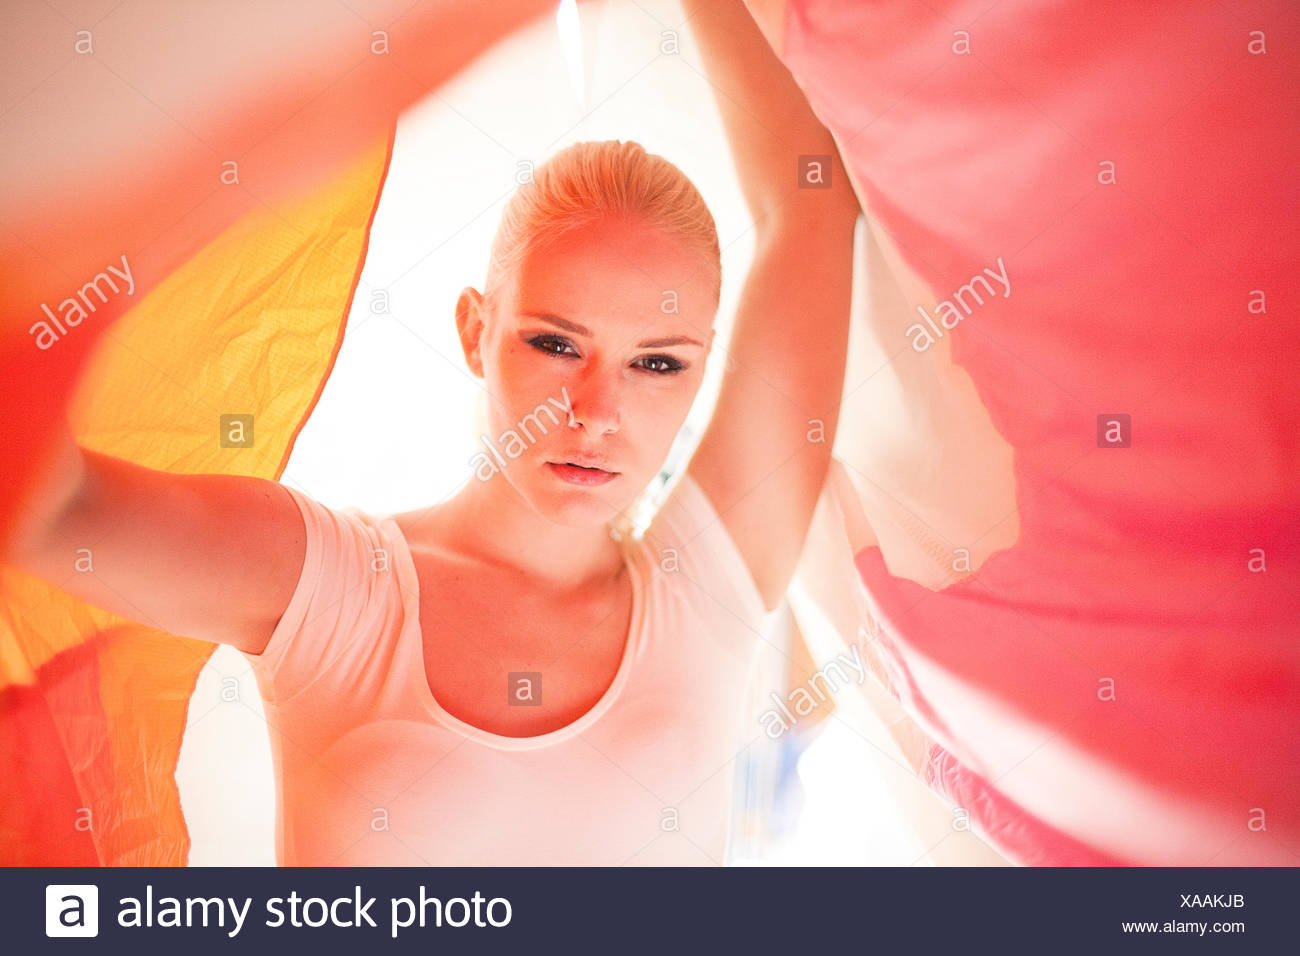 young woman between coloured sailings - Stock Image